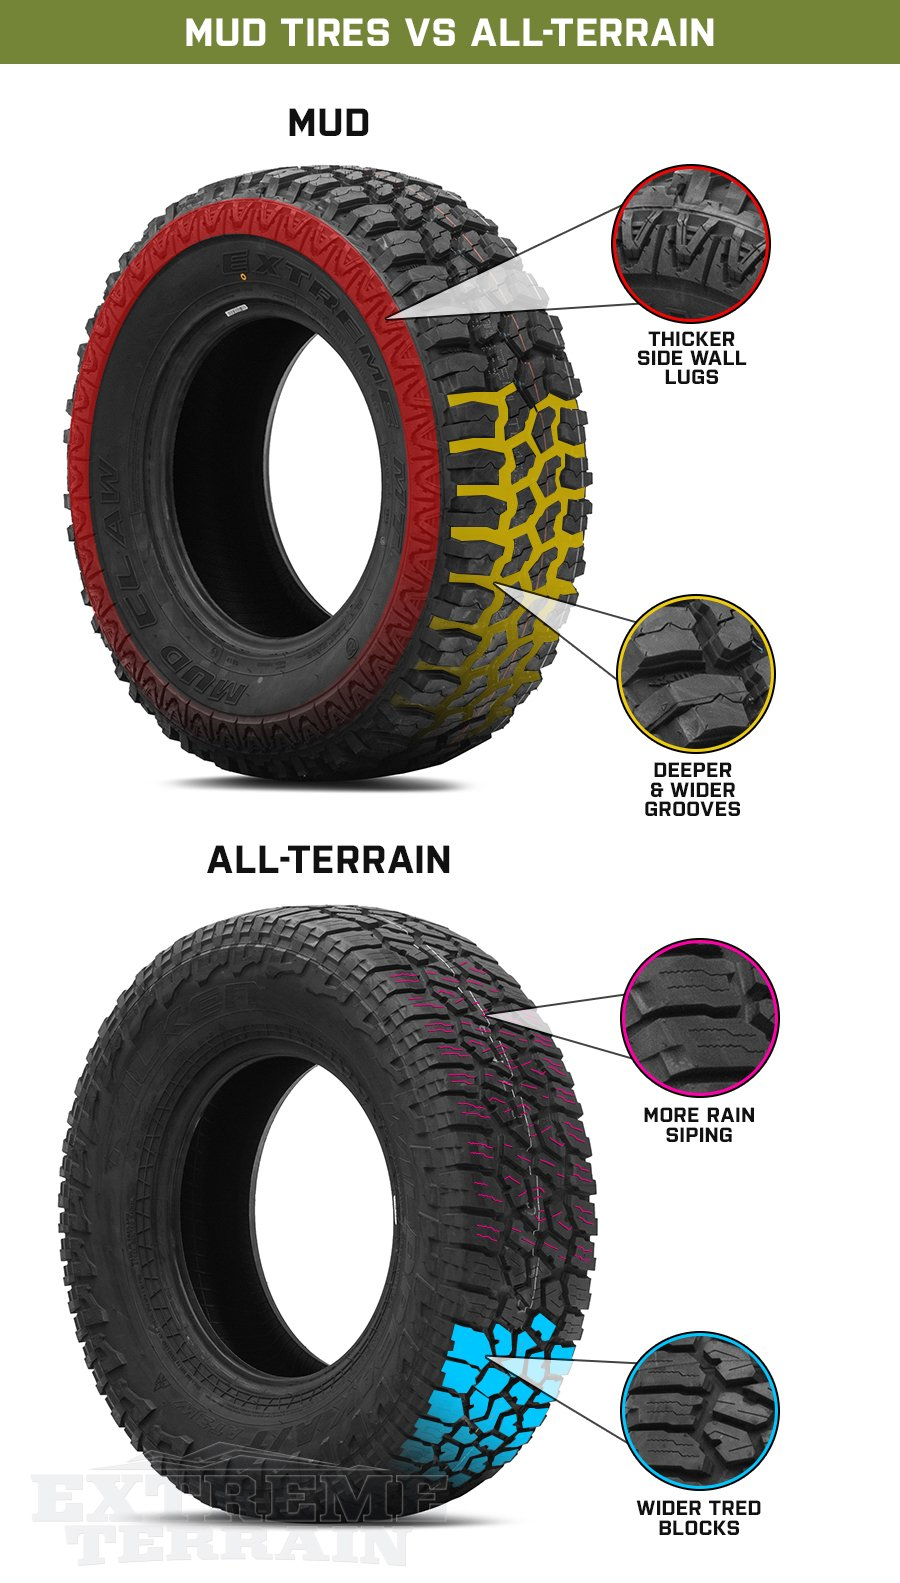 Mud Tire Features vs All-Terrain Tire Features Graphic